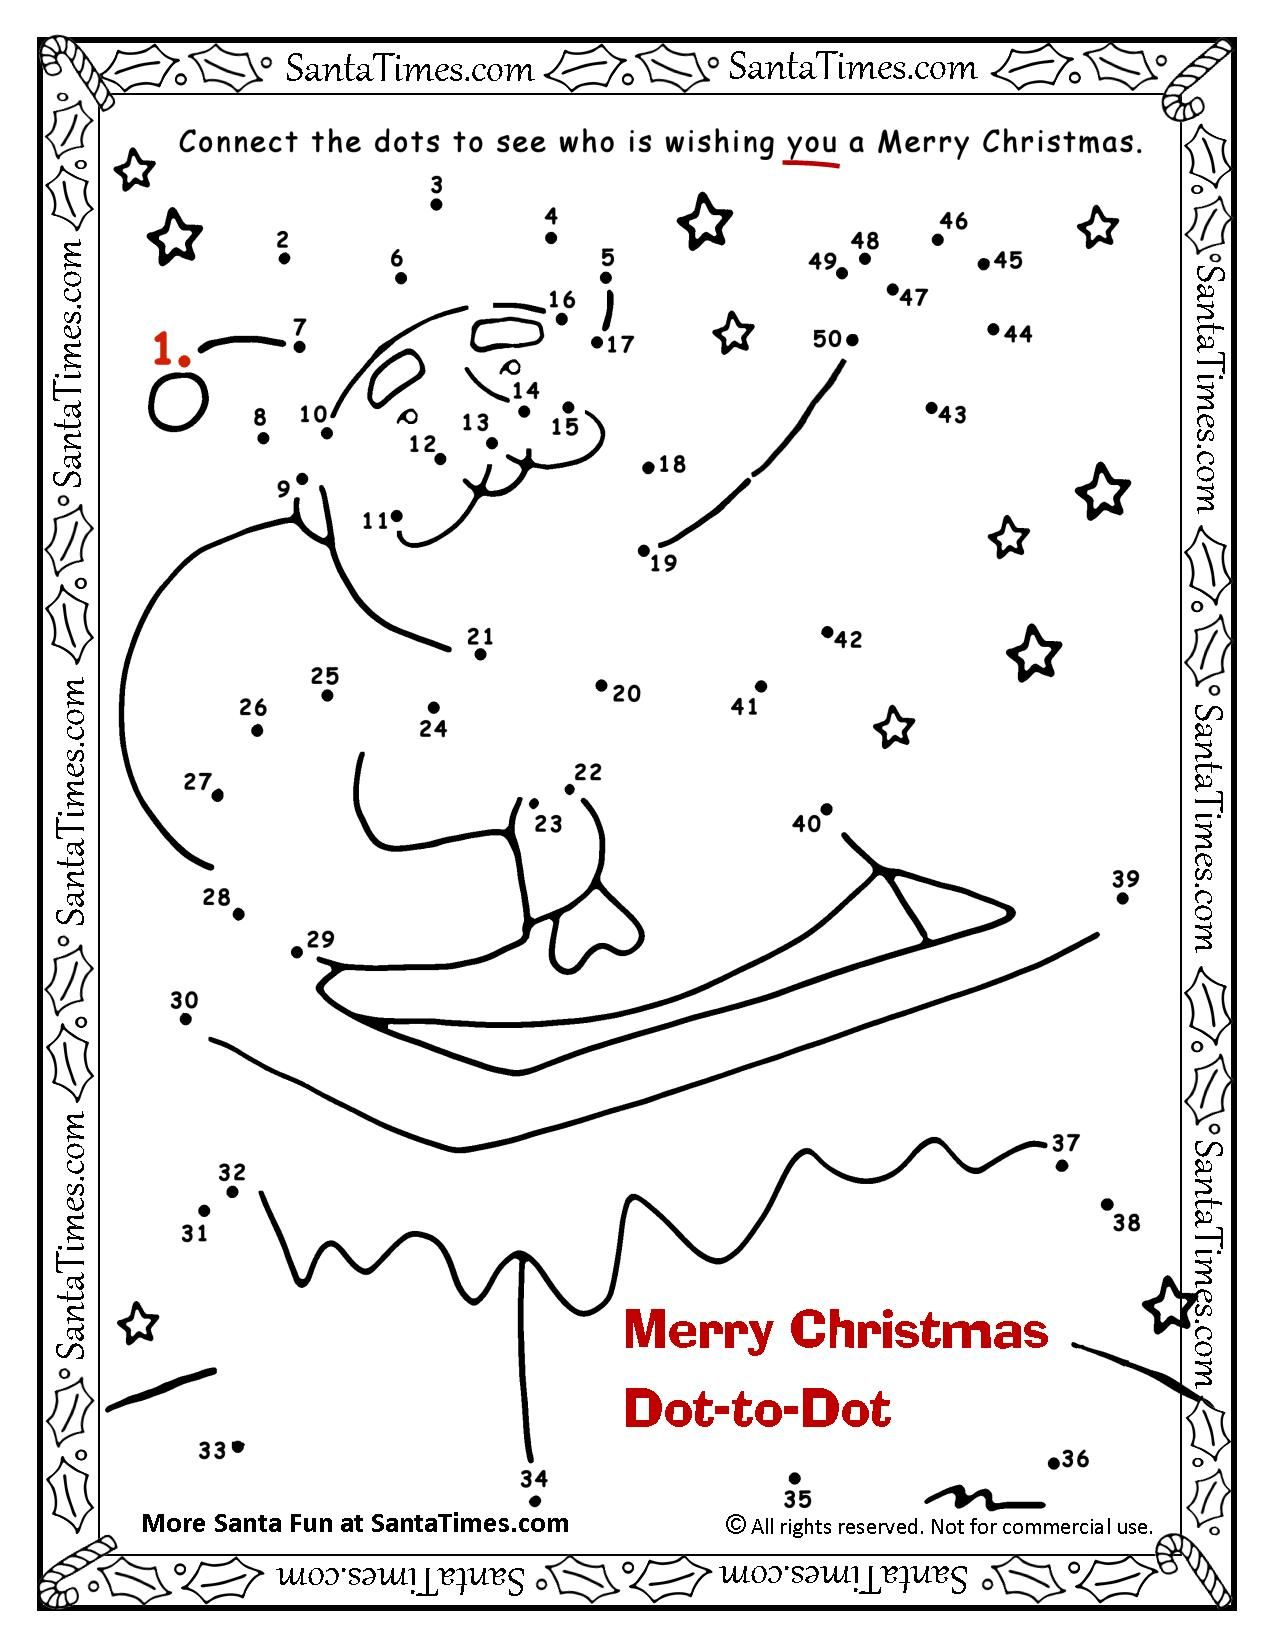 Merry Christmas Dottodot Connect the dots to see who is